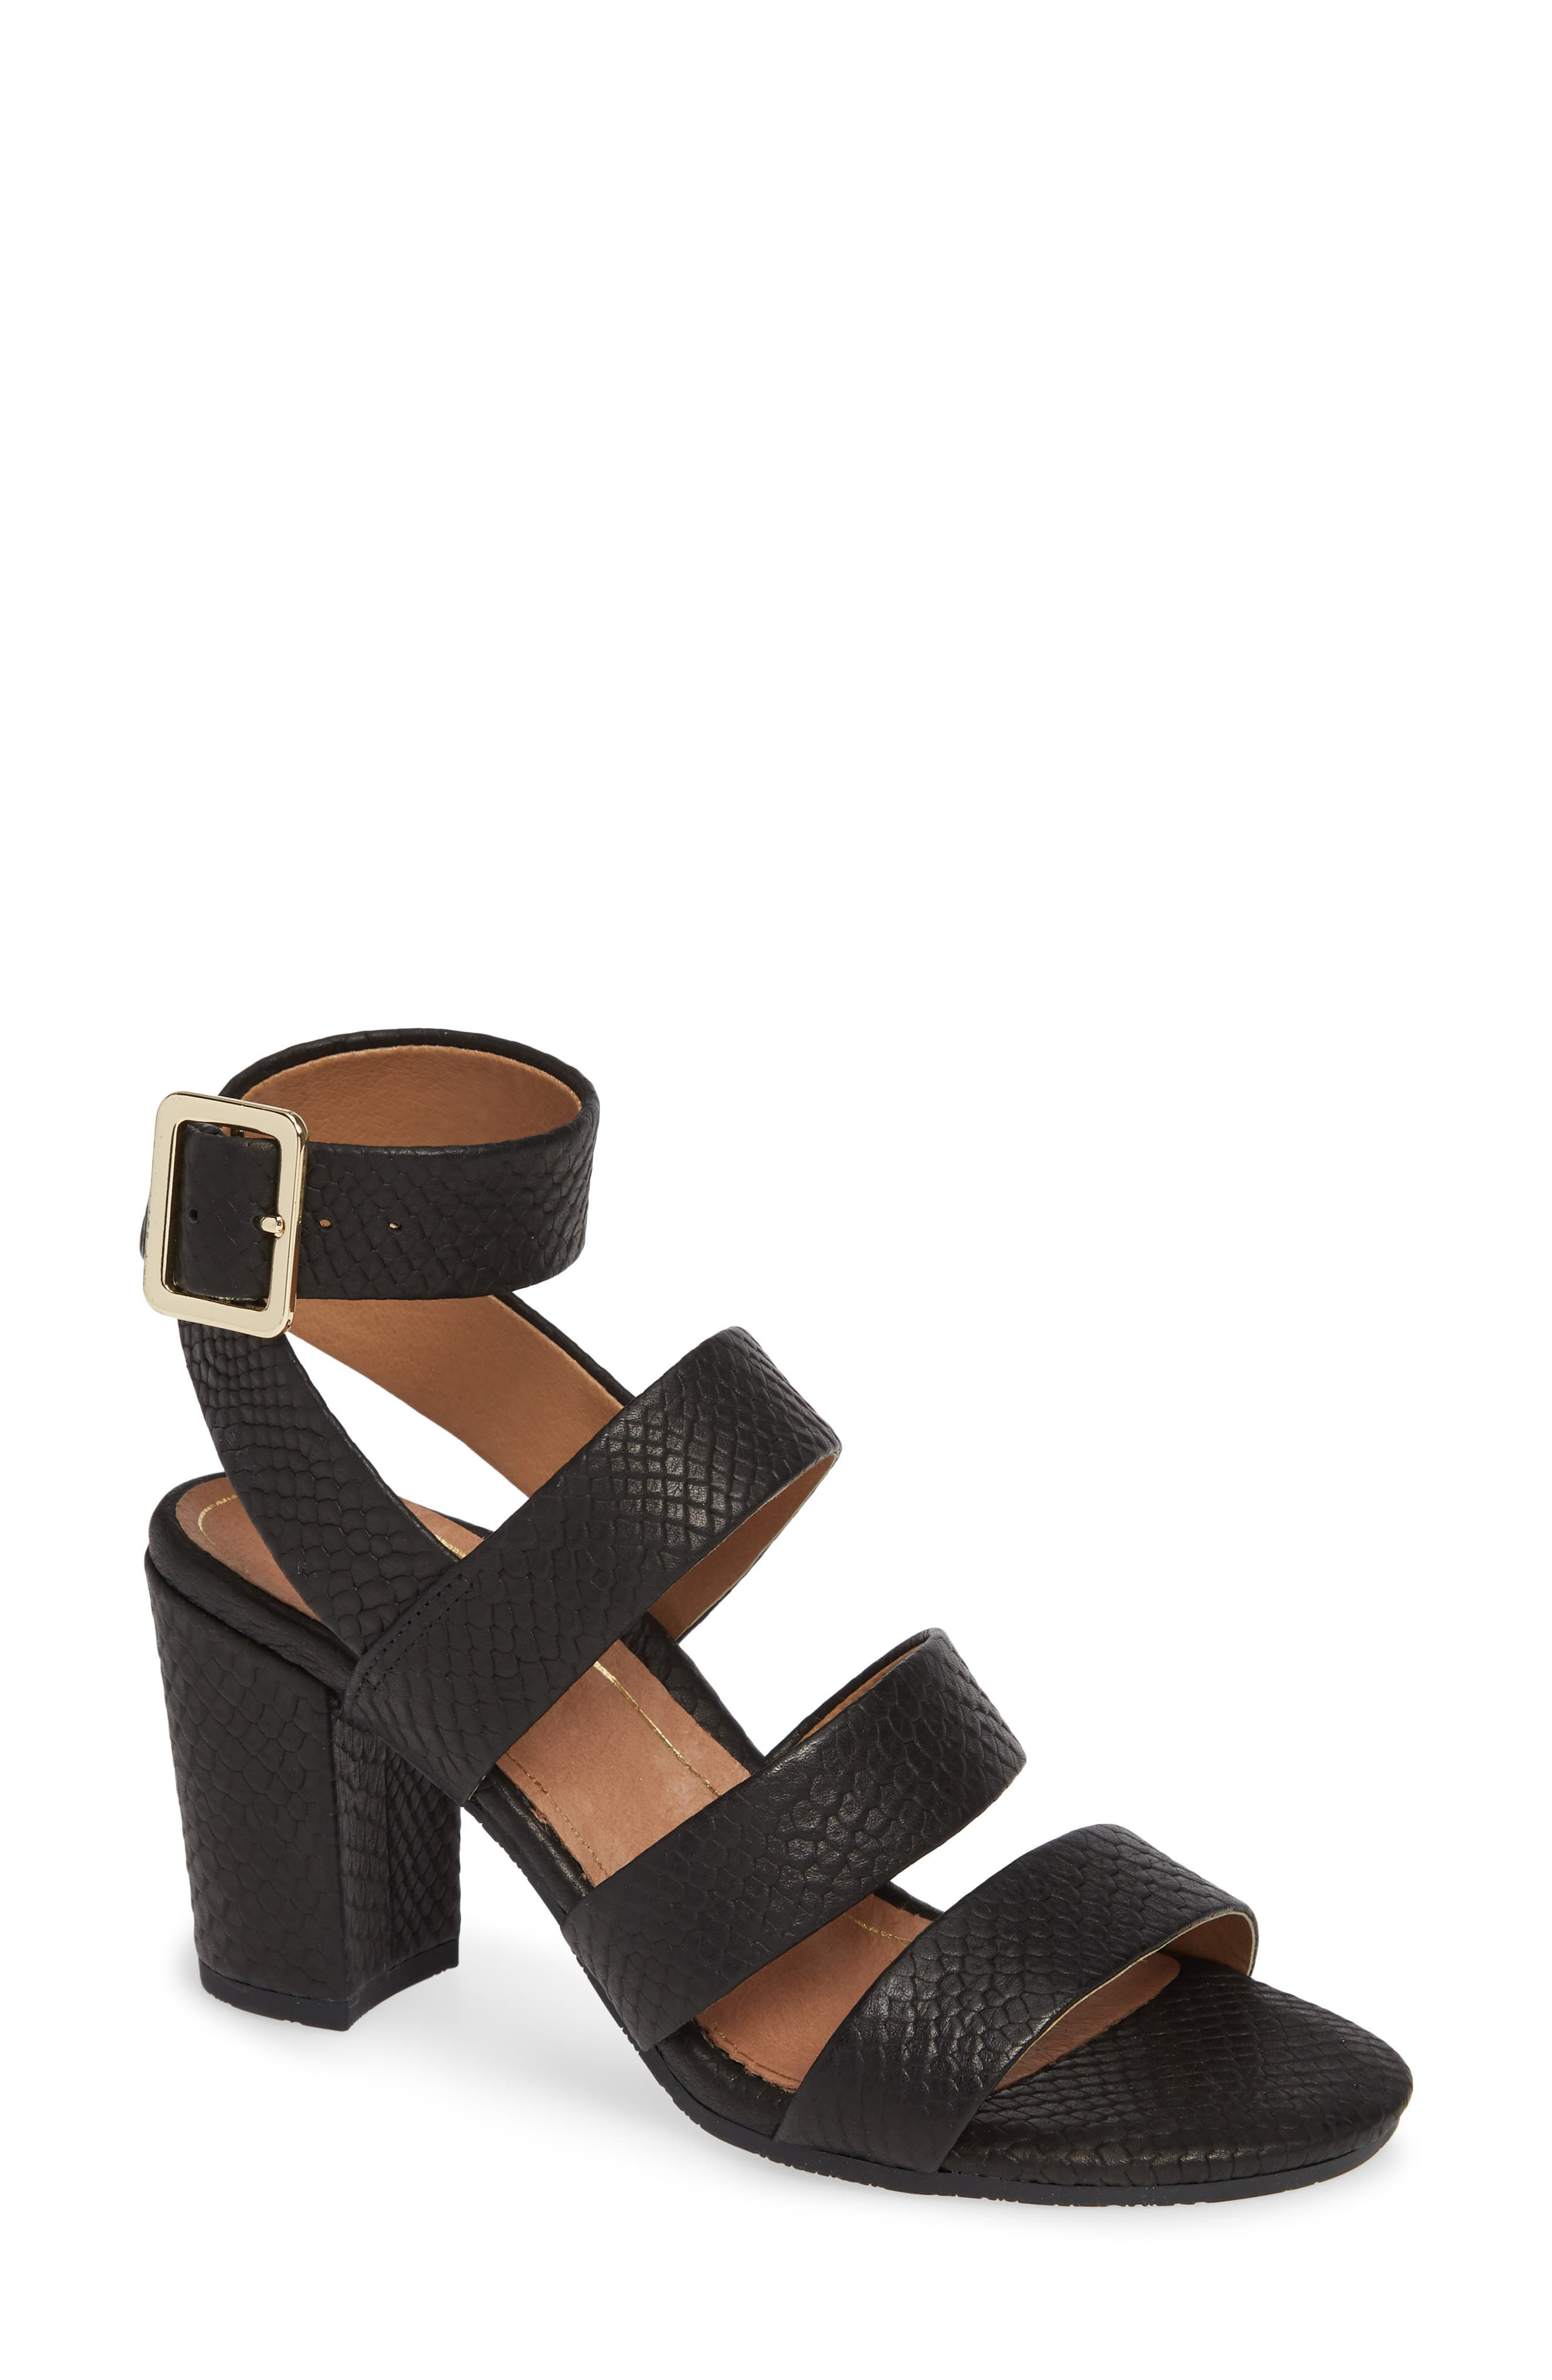 Blaire Block Heel Sandal,                             Main thumbnail 1, color,                             BLACK SNAKE EMBOSSED LEATHER